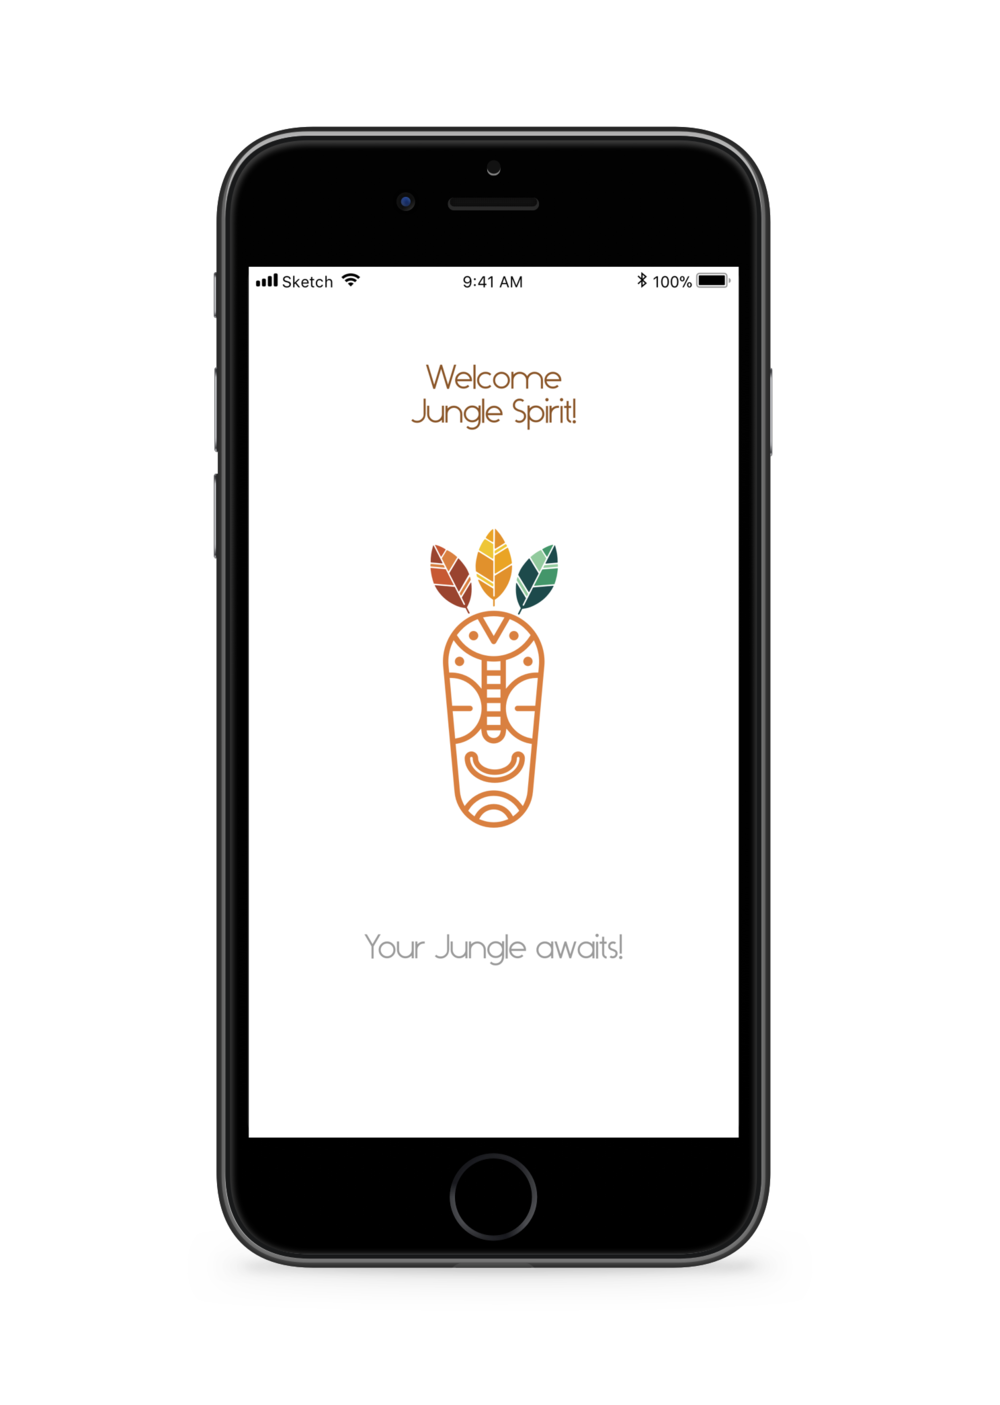 Welcome on board! - Jungle Spirit welcomes you, you are the Jungle Spirit. To take care of our plants is a responsibility but to make the experience more engaging I applied some gamification to Jungle Spirit. From now on the user becomes the owner and protector of his own jungle.